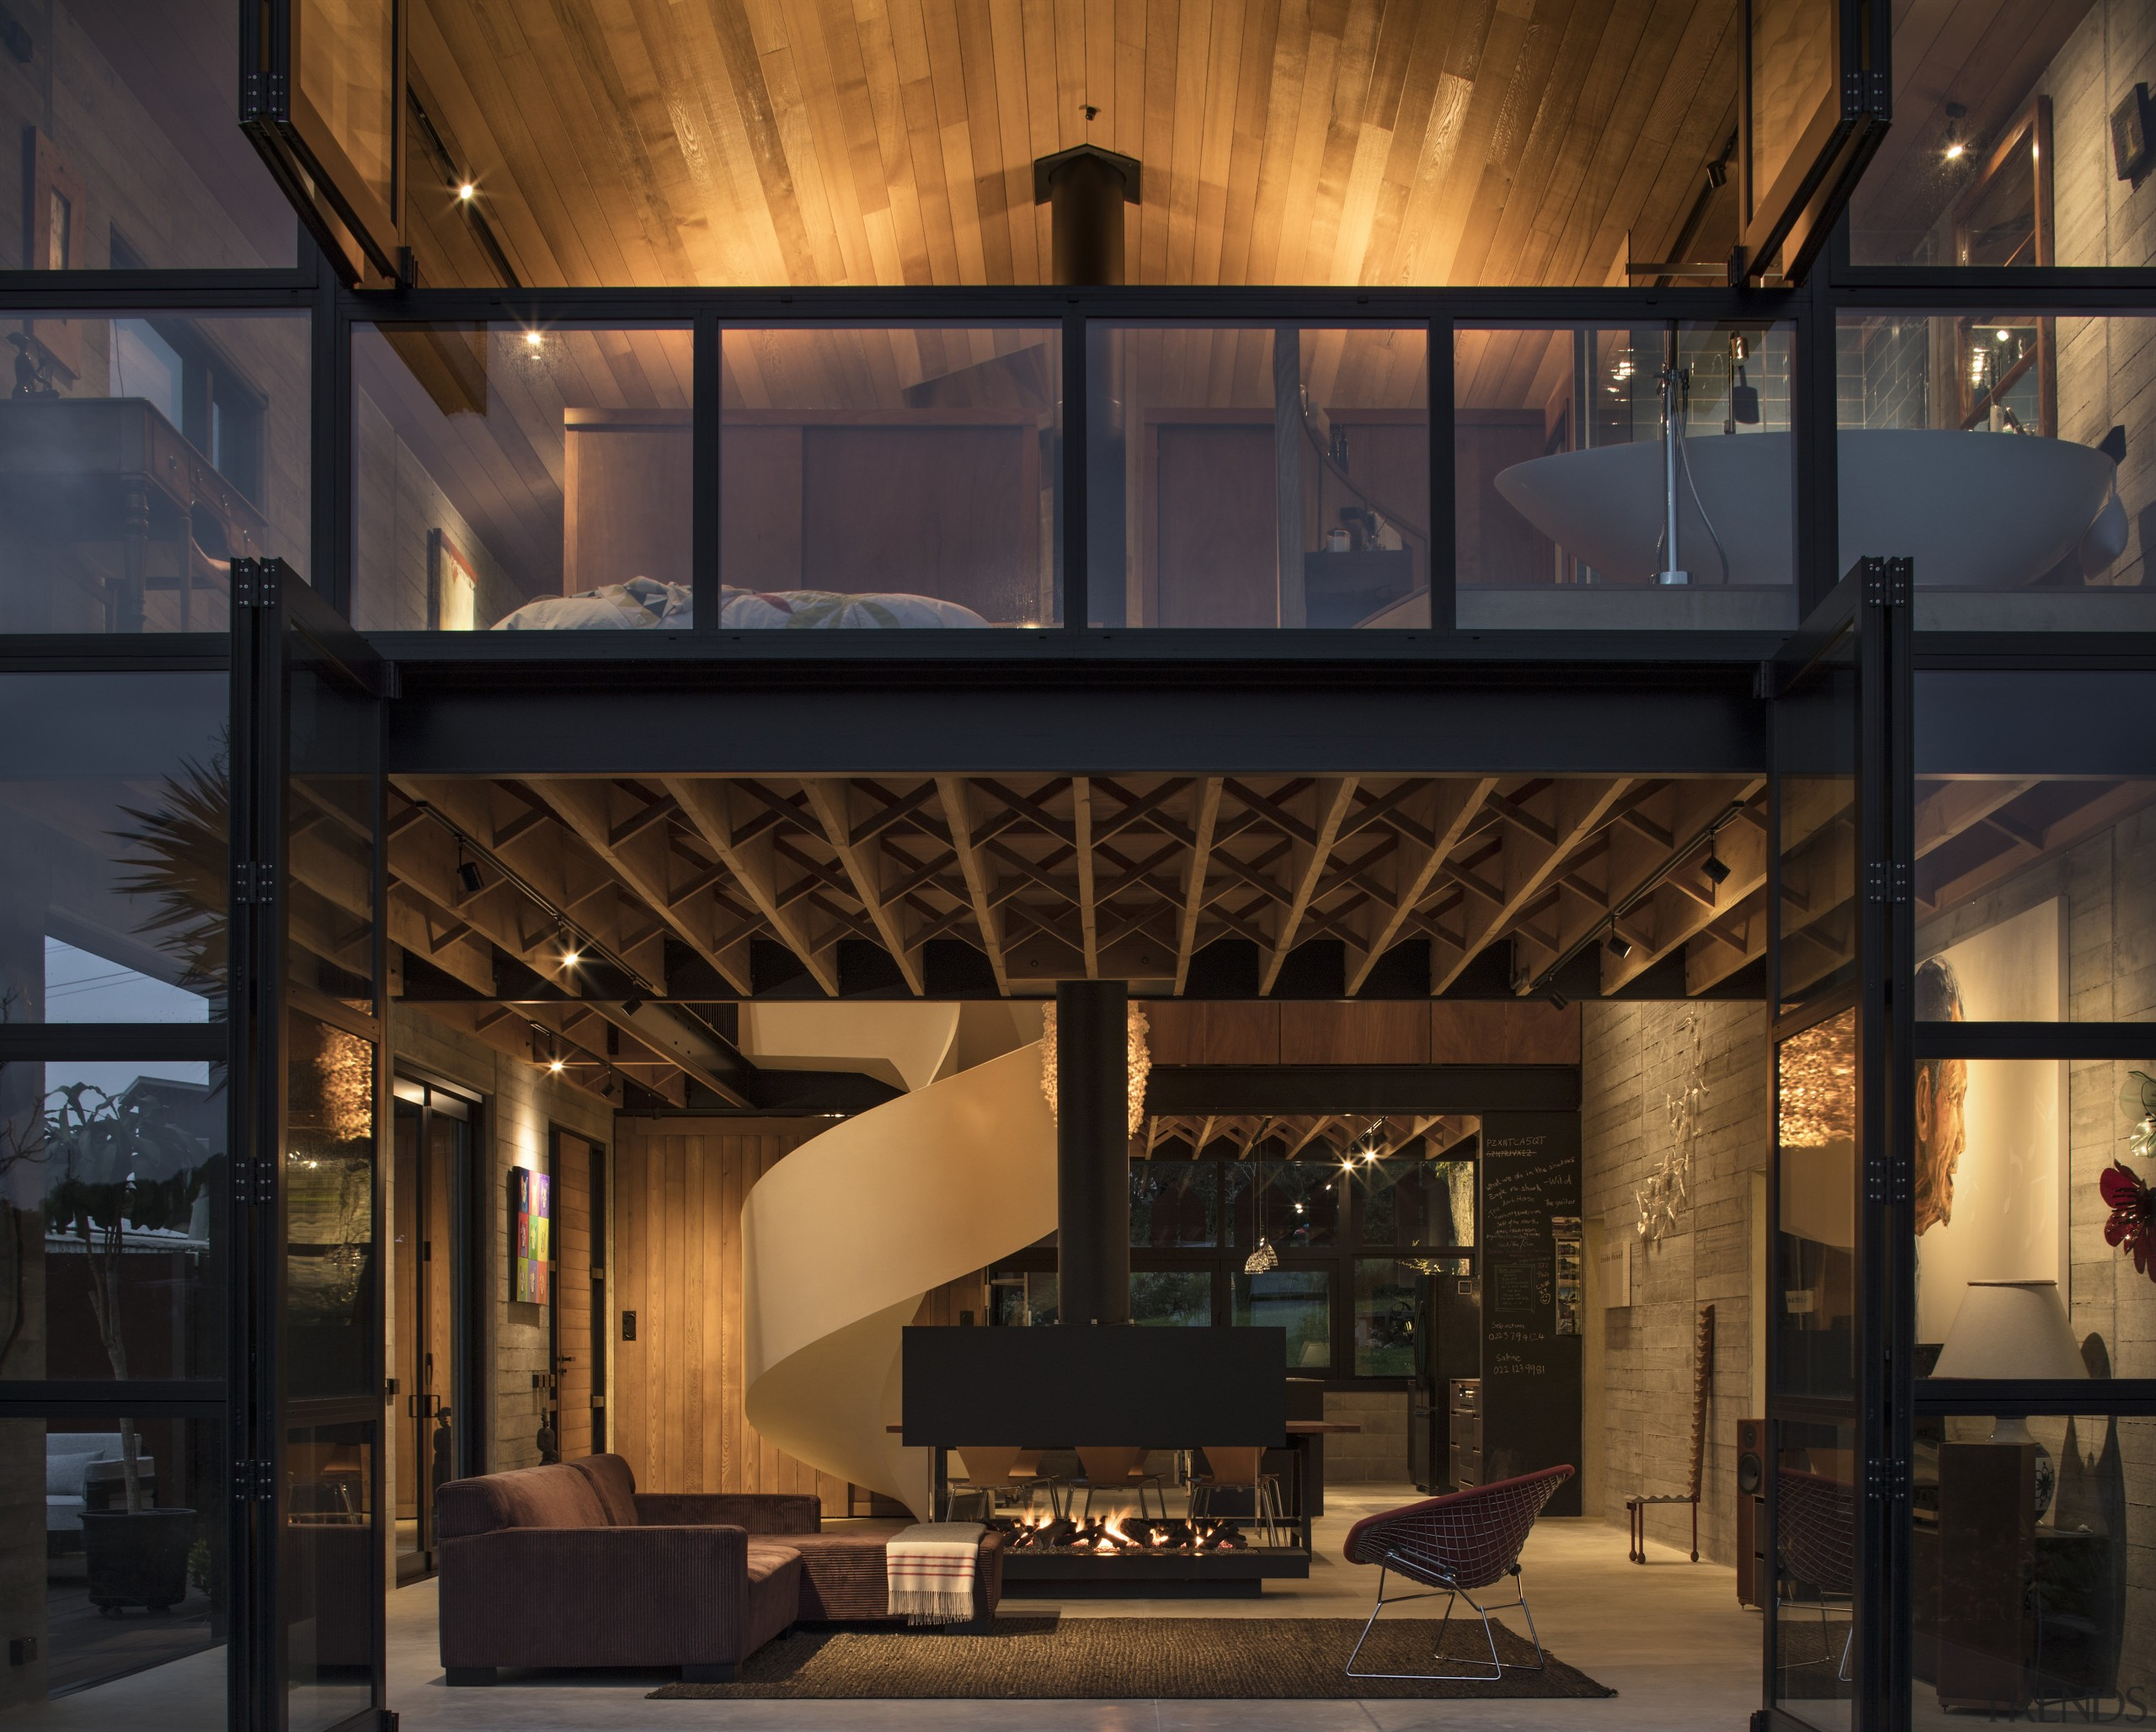 Mezzanine spaces sit at both ends of the architecture, home, interior design, lighting, black